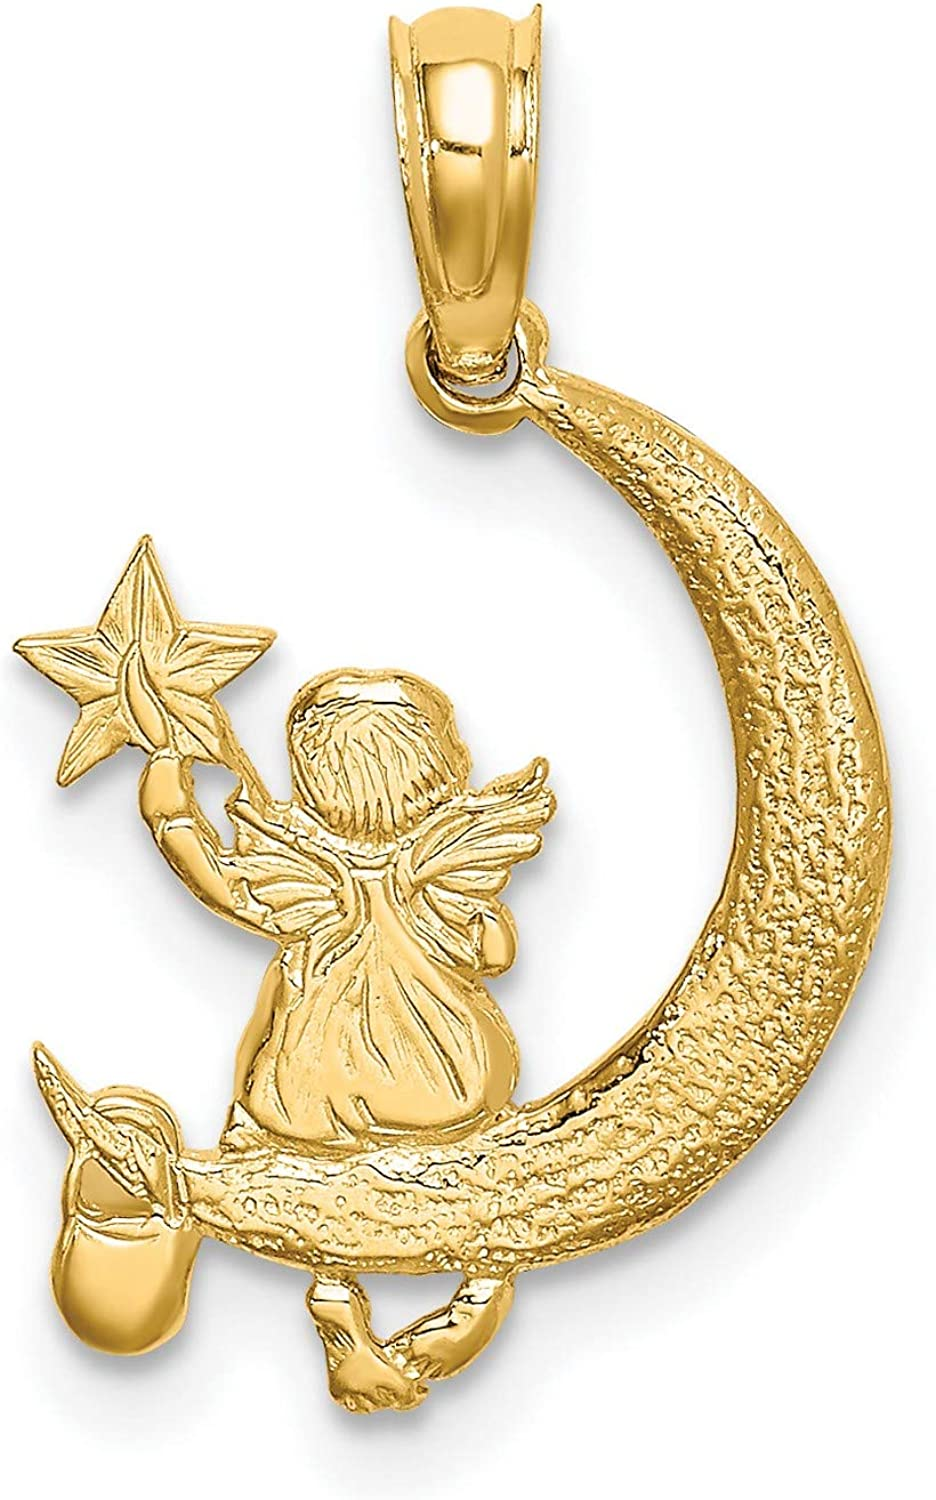 Details about  /New Real Solid 14K Gold 16MM Dolphin Charm Pendant